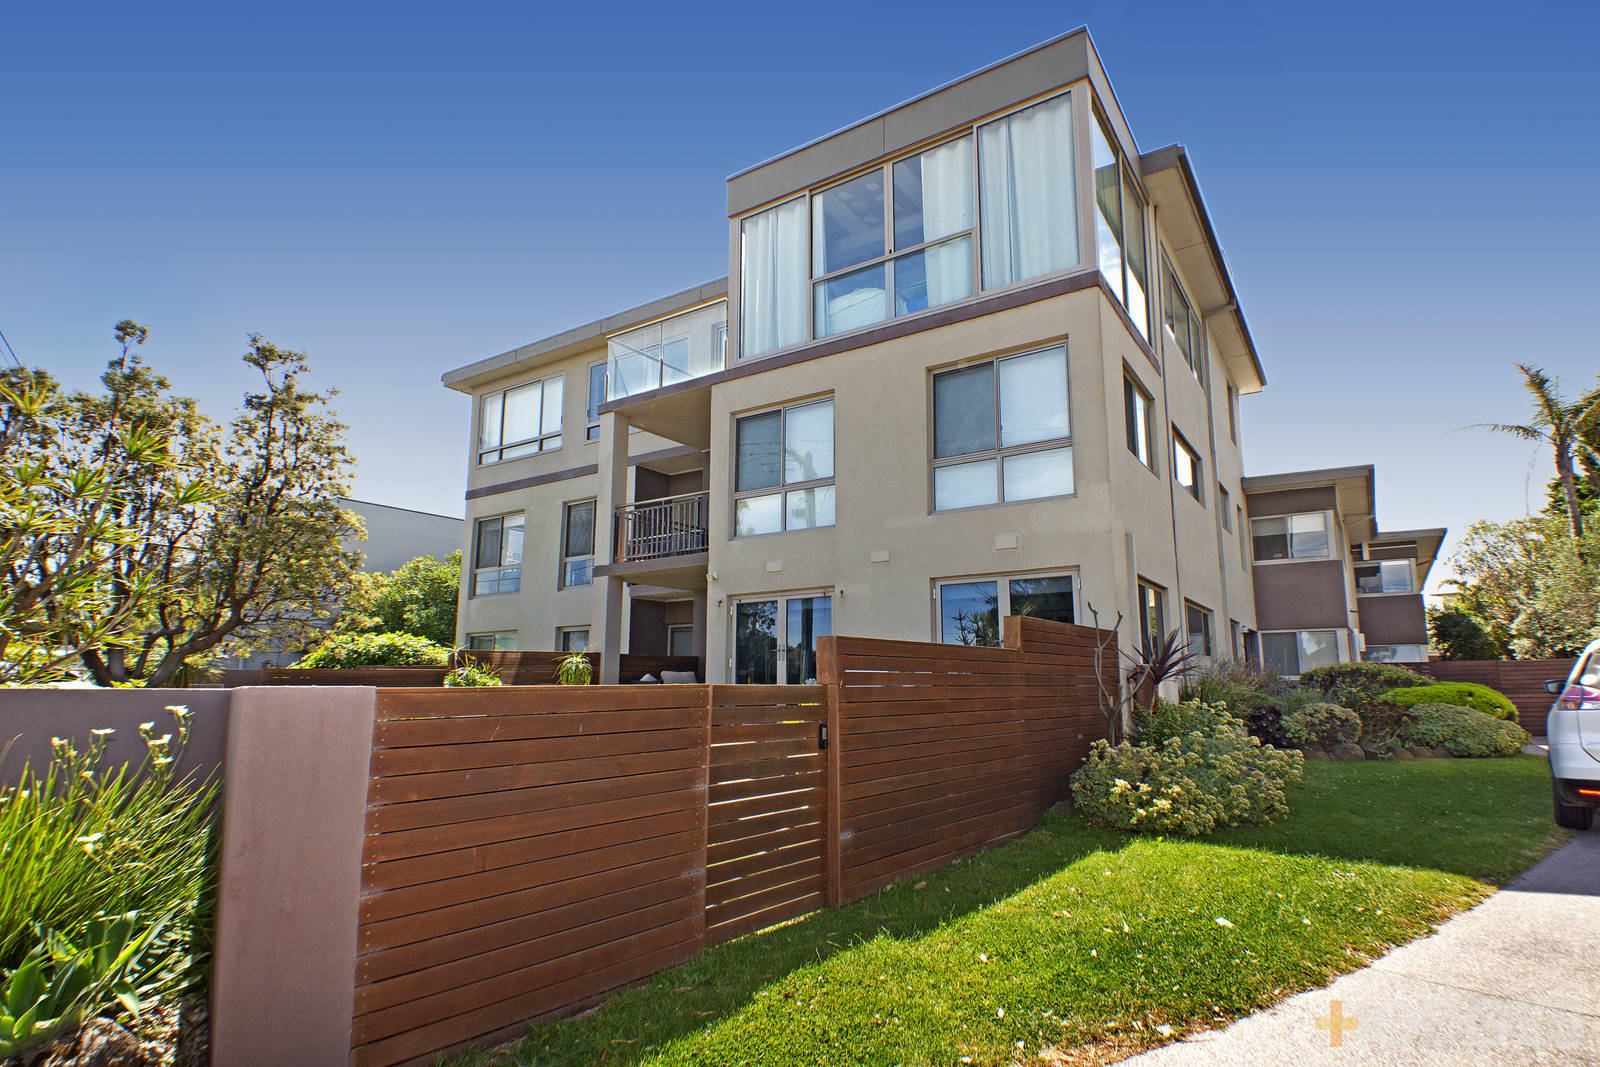 18/70 Beach Road Mentone Photo - 3